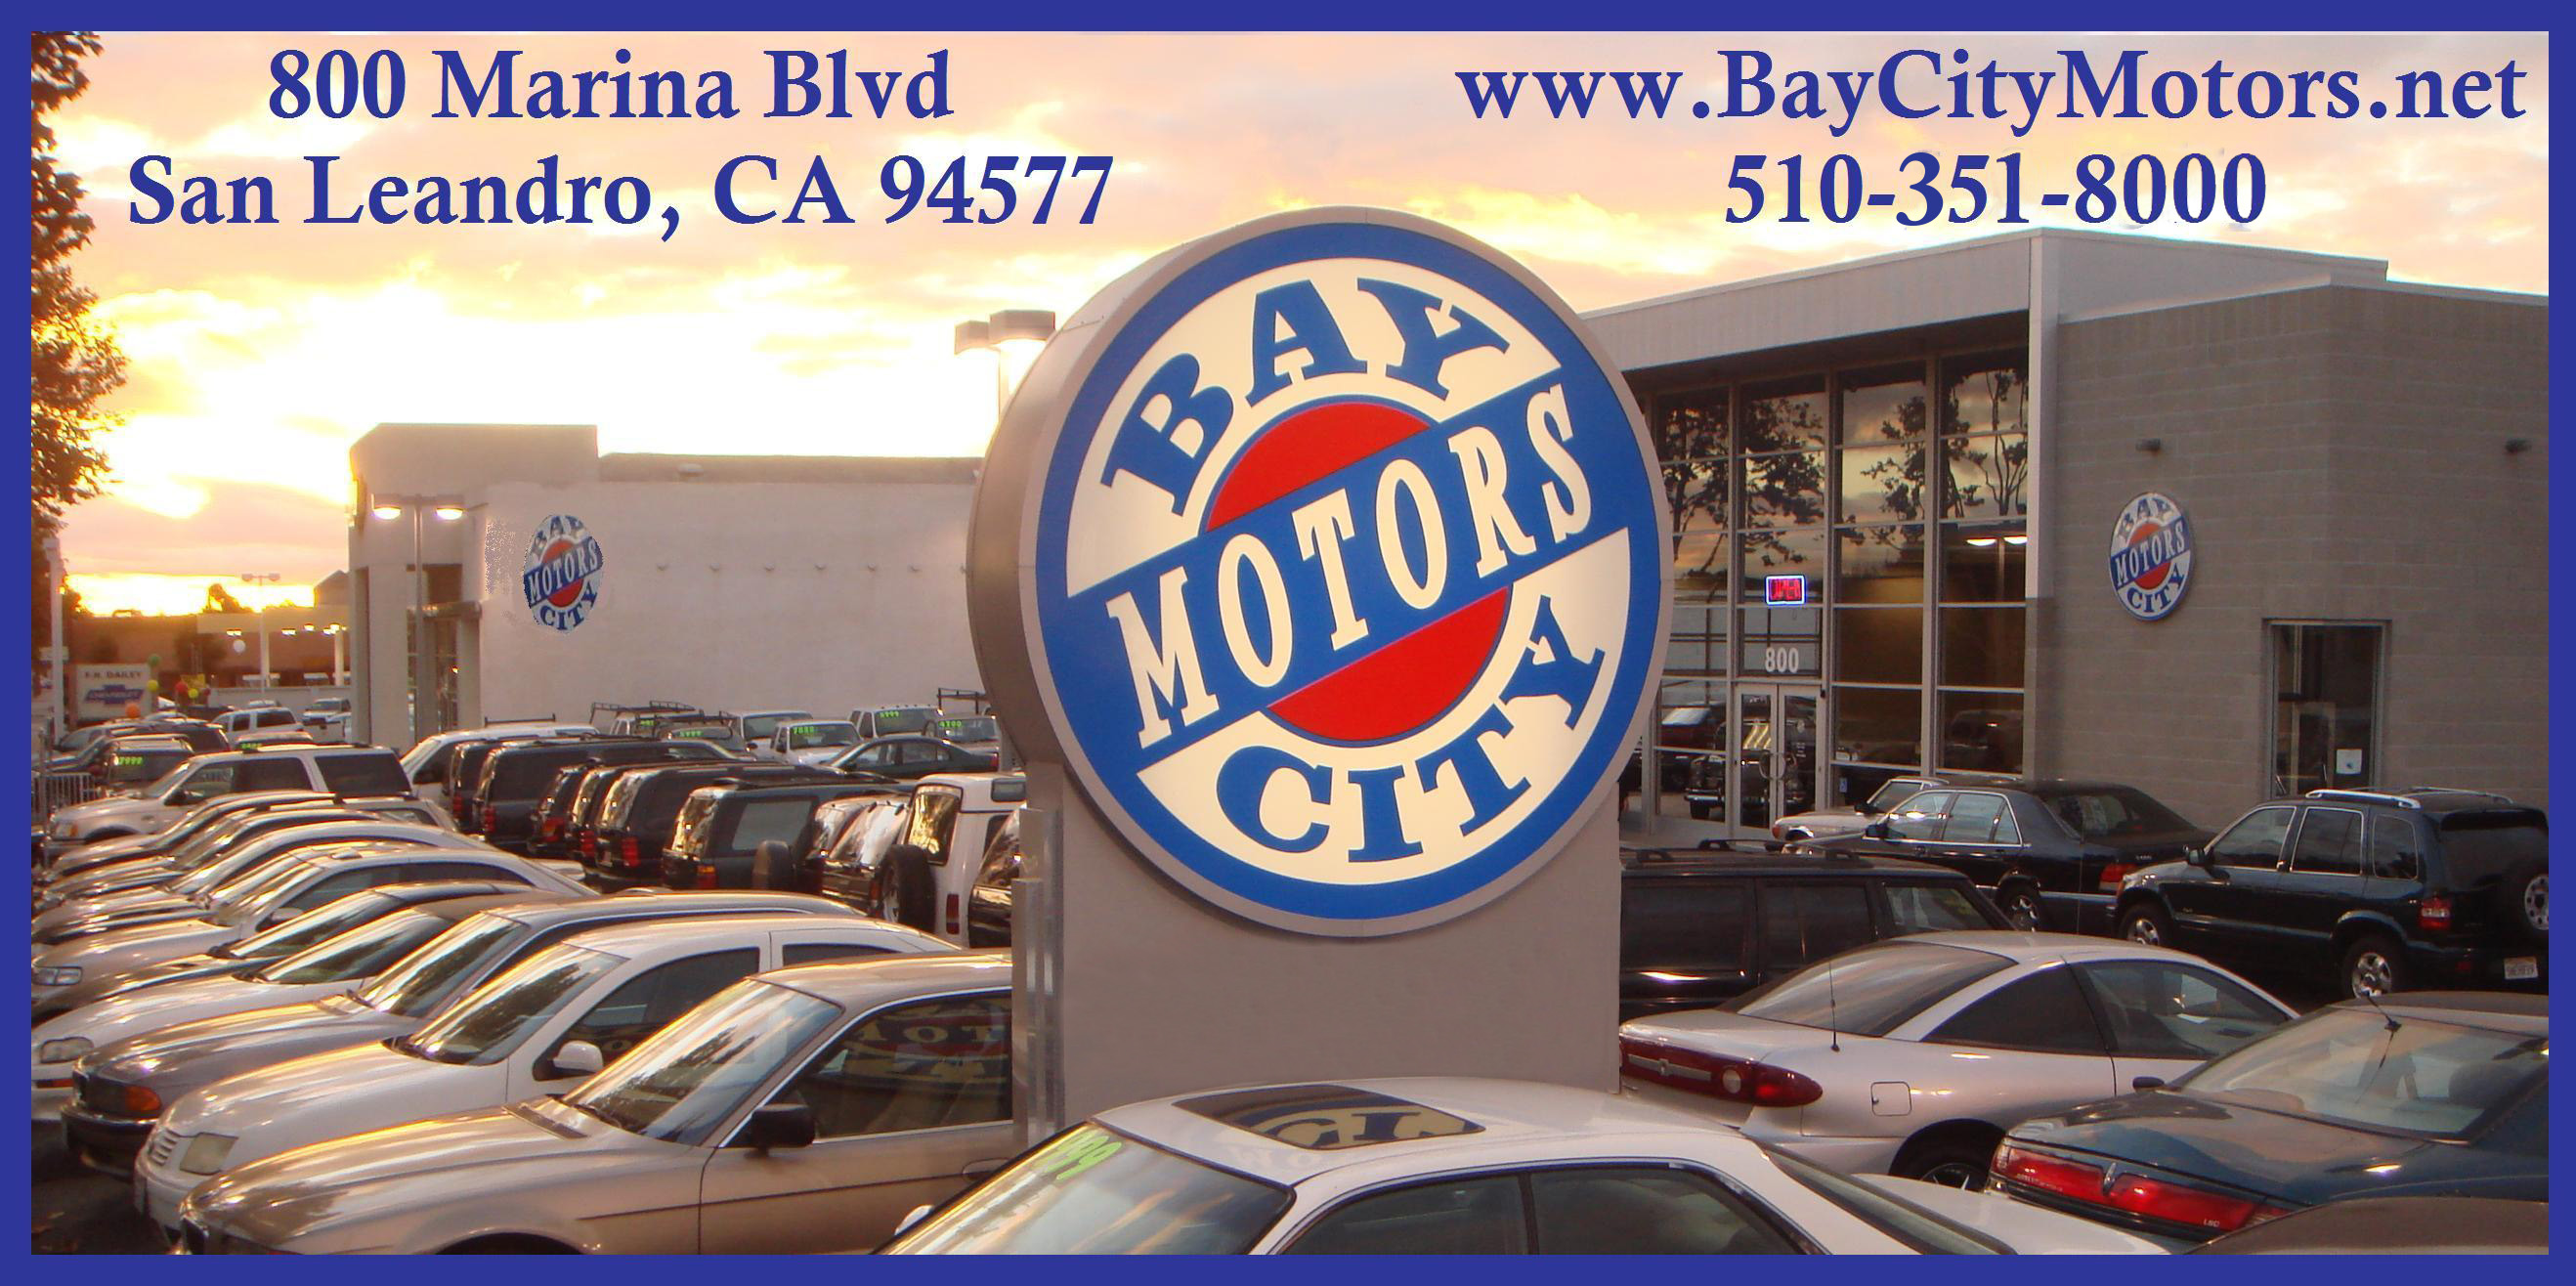 Bay city motors 2019 2020 new car release date for Bay city motors san leandro ca